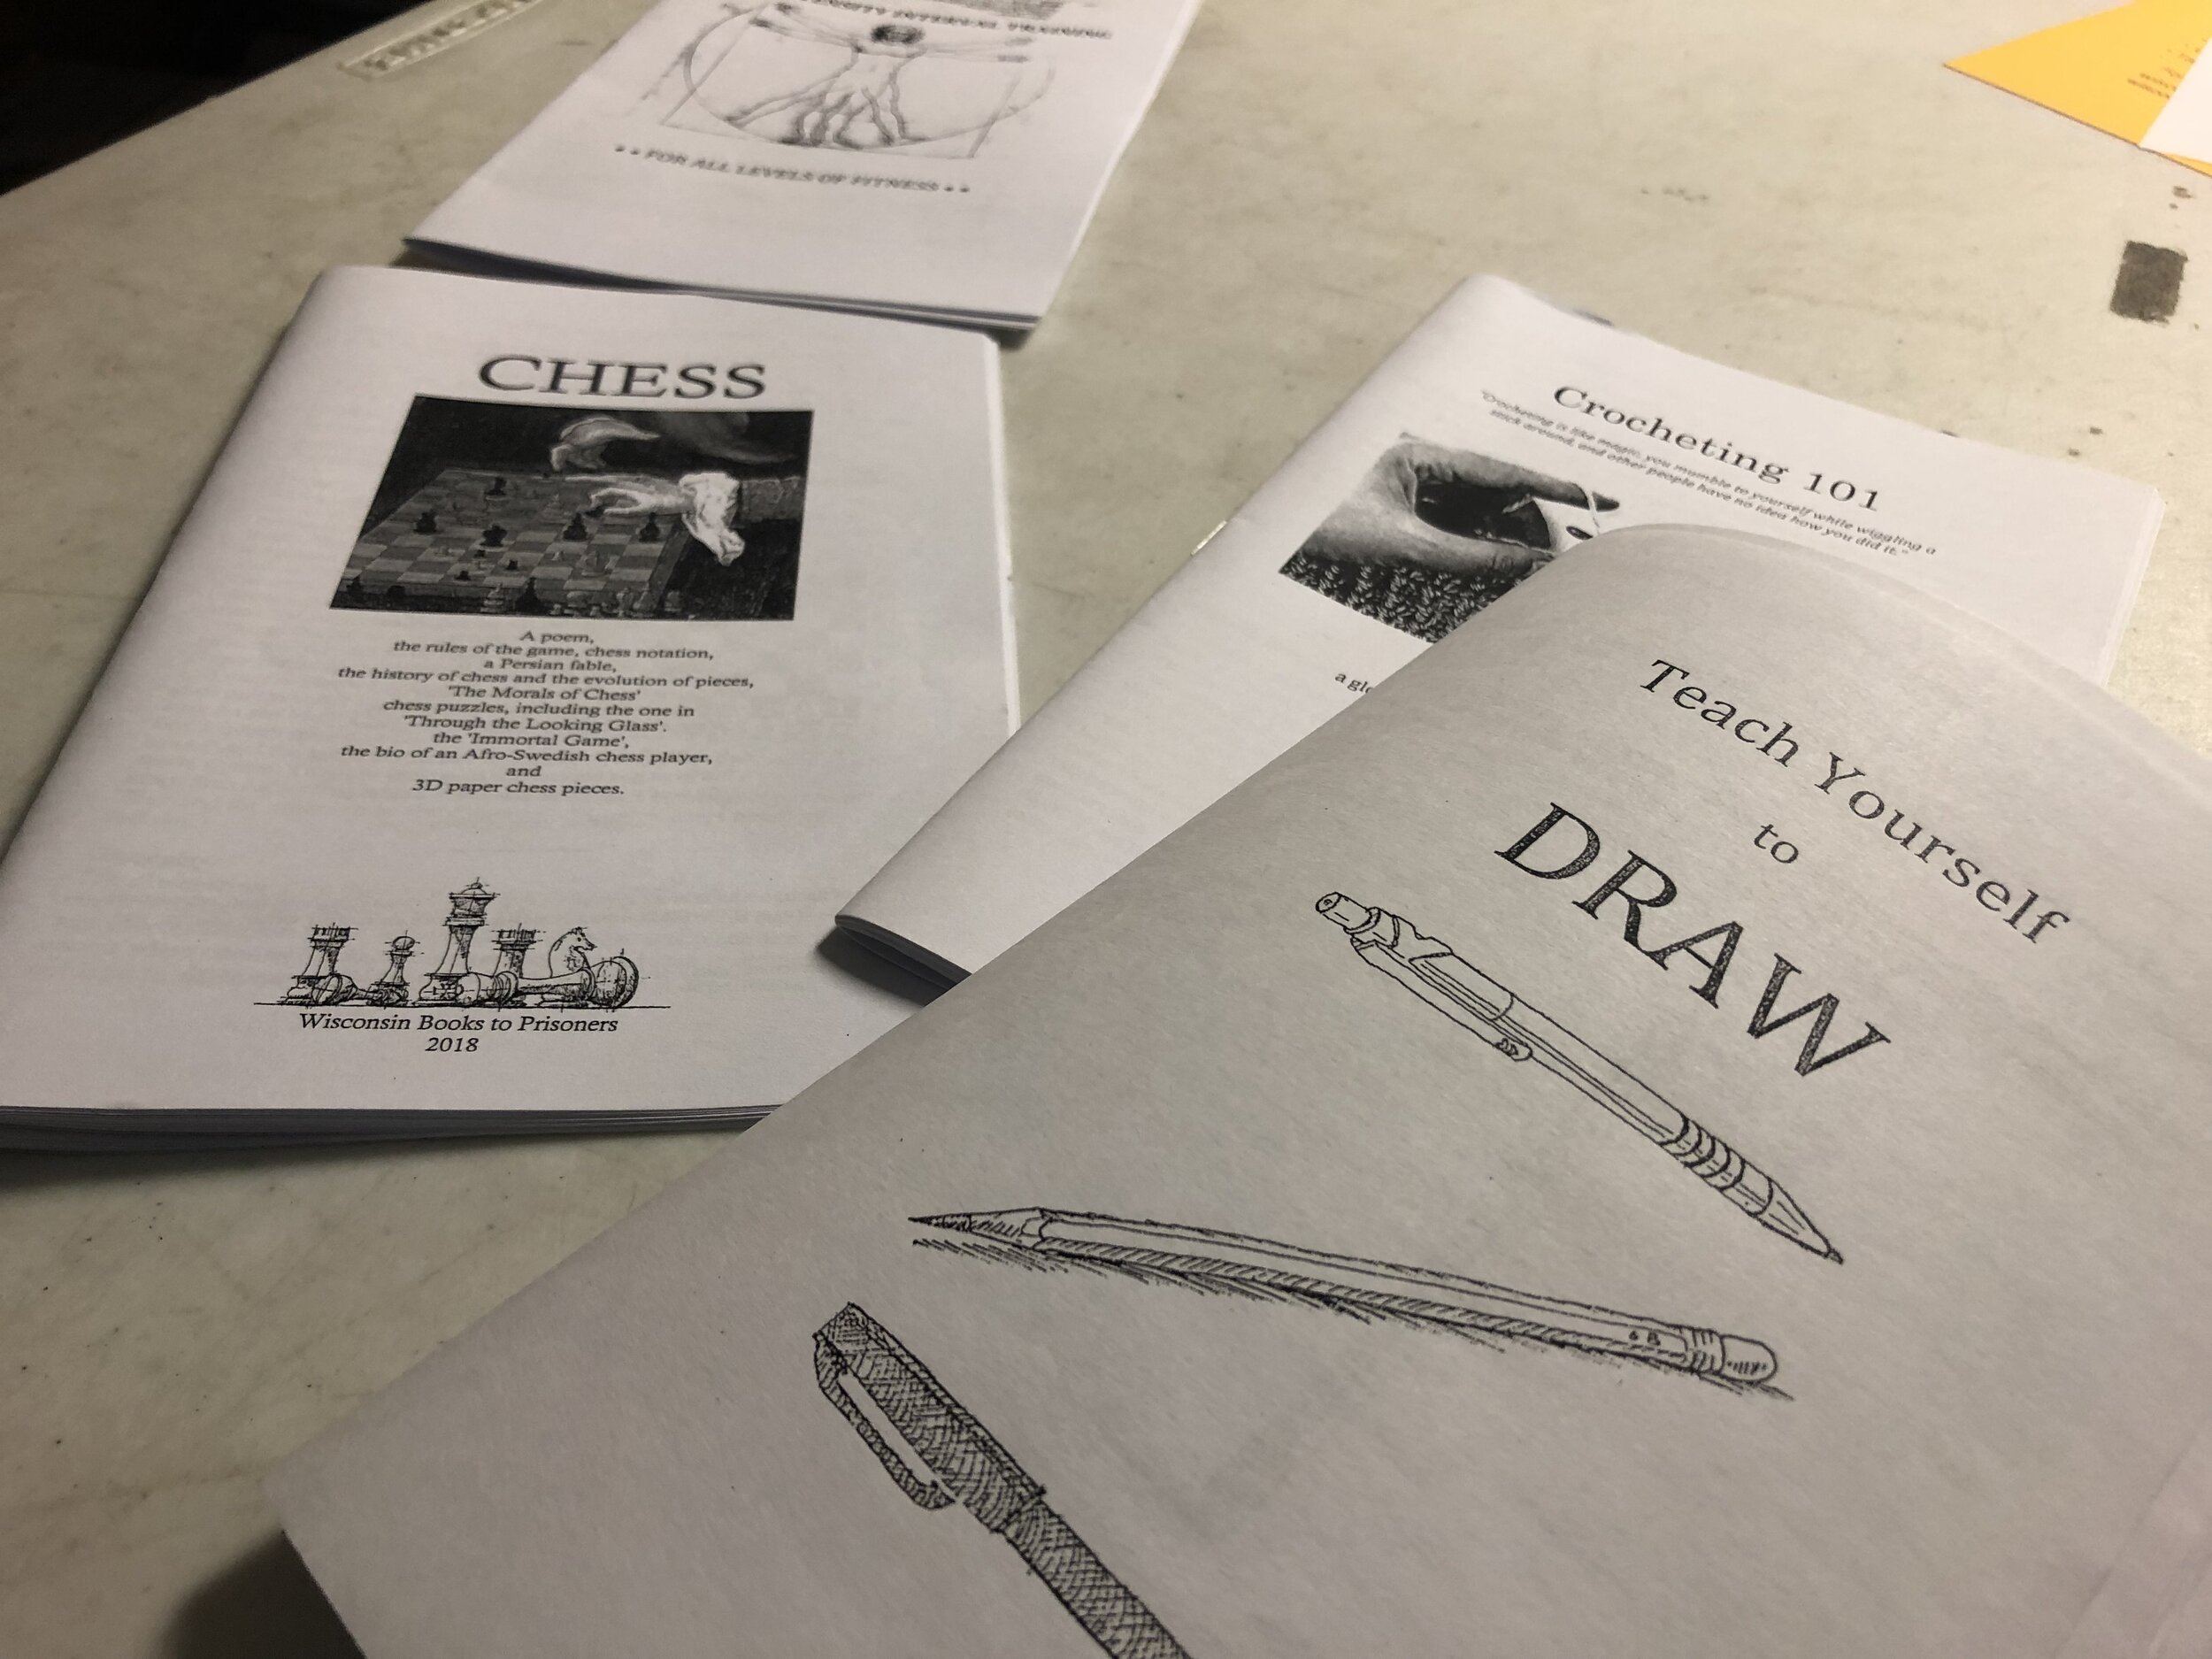 Wisconsin Books To Prisoners has created several of its own zines on various subjects, in addition to sending copies of existing books to incarcerated people.